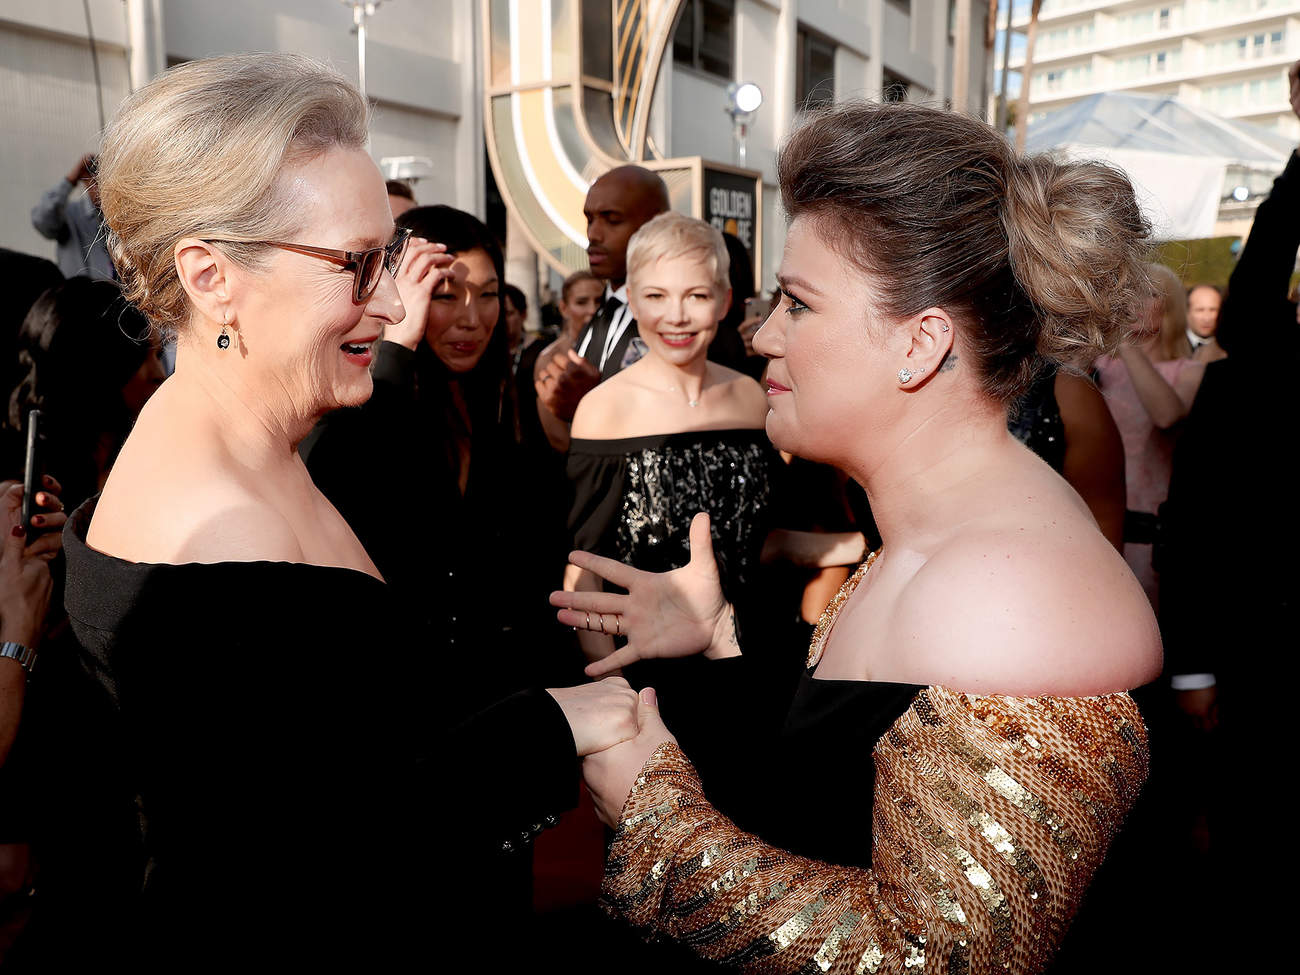 Kelly Clarkson Totally Fangirls Over Meryl Streep on Golden Globes Red Carpet: 'Can I Meet You?'